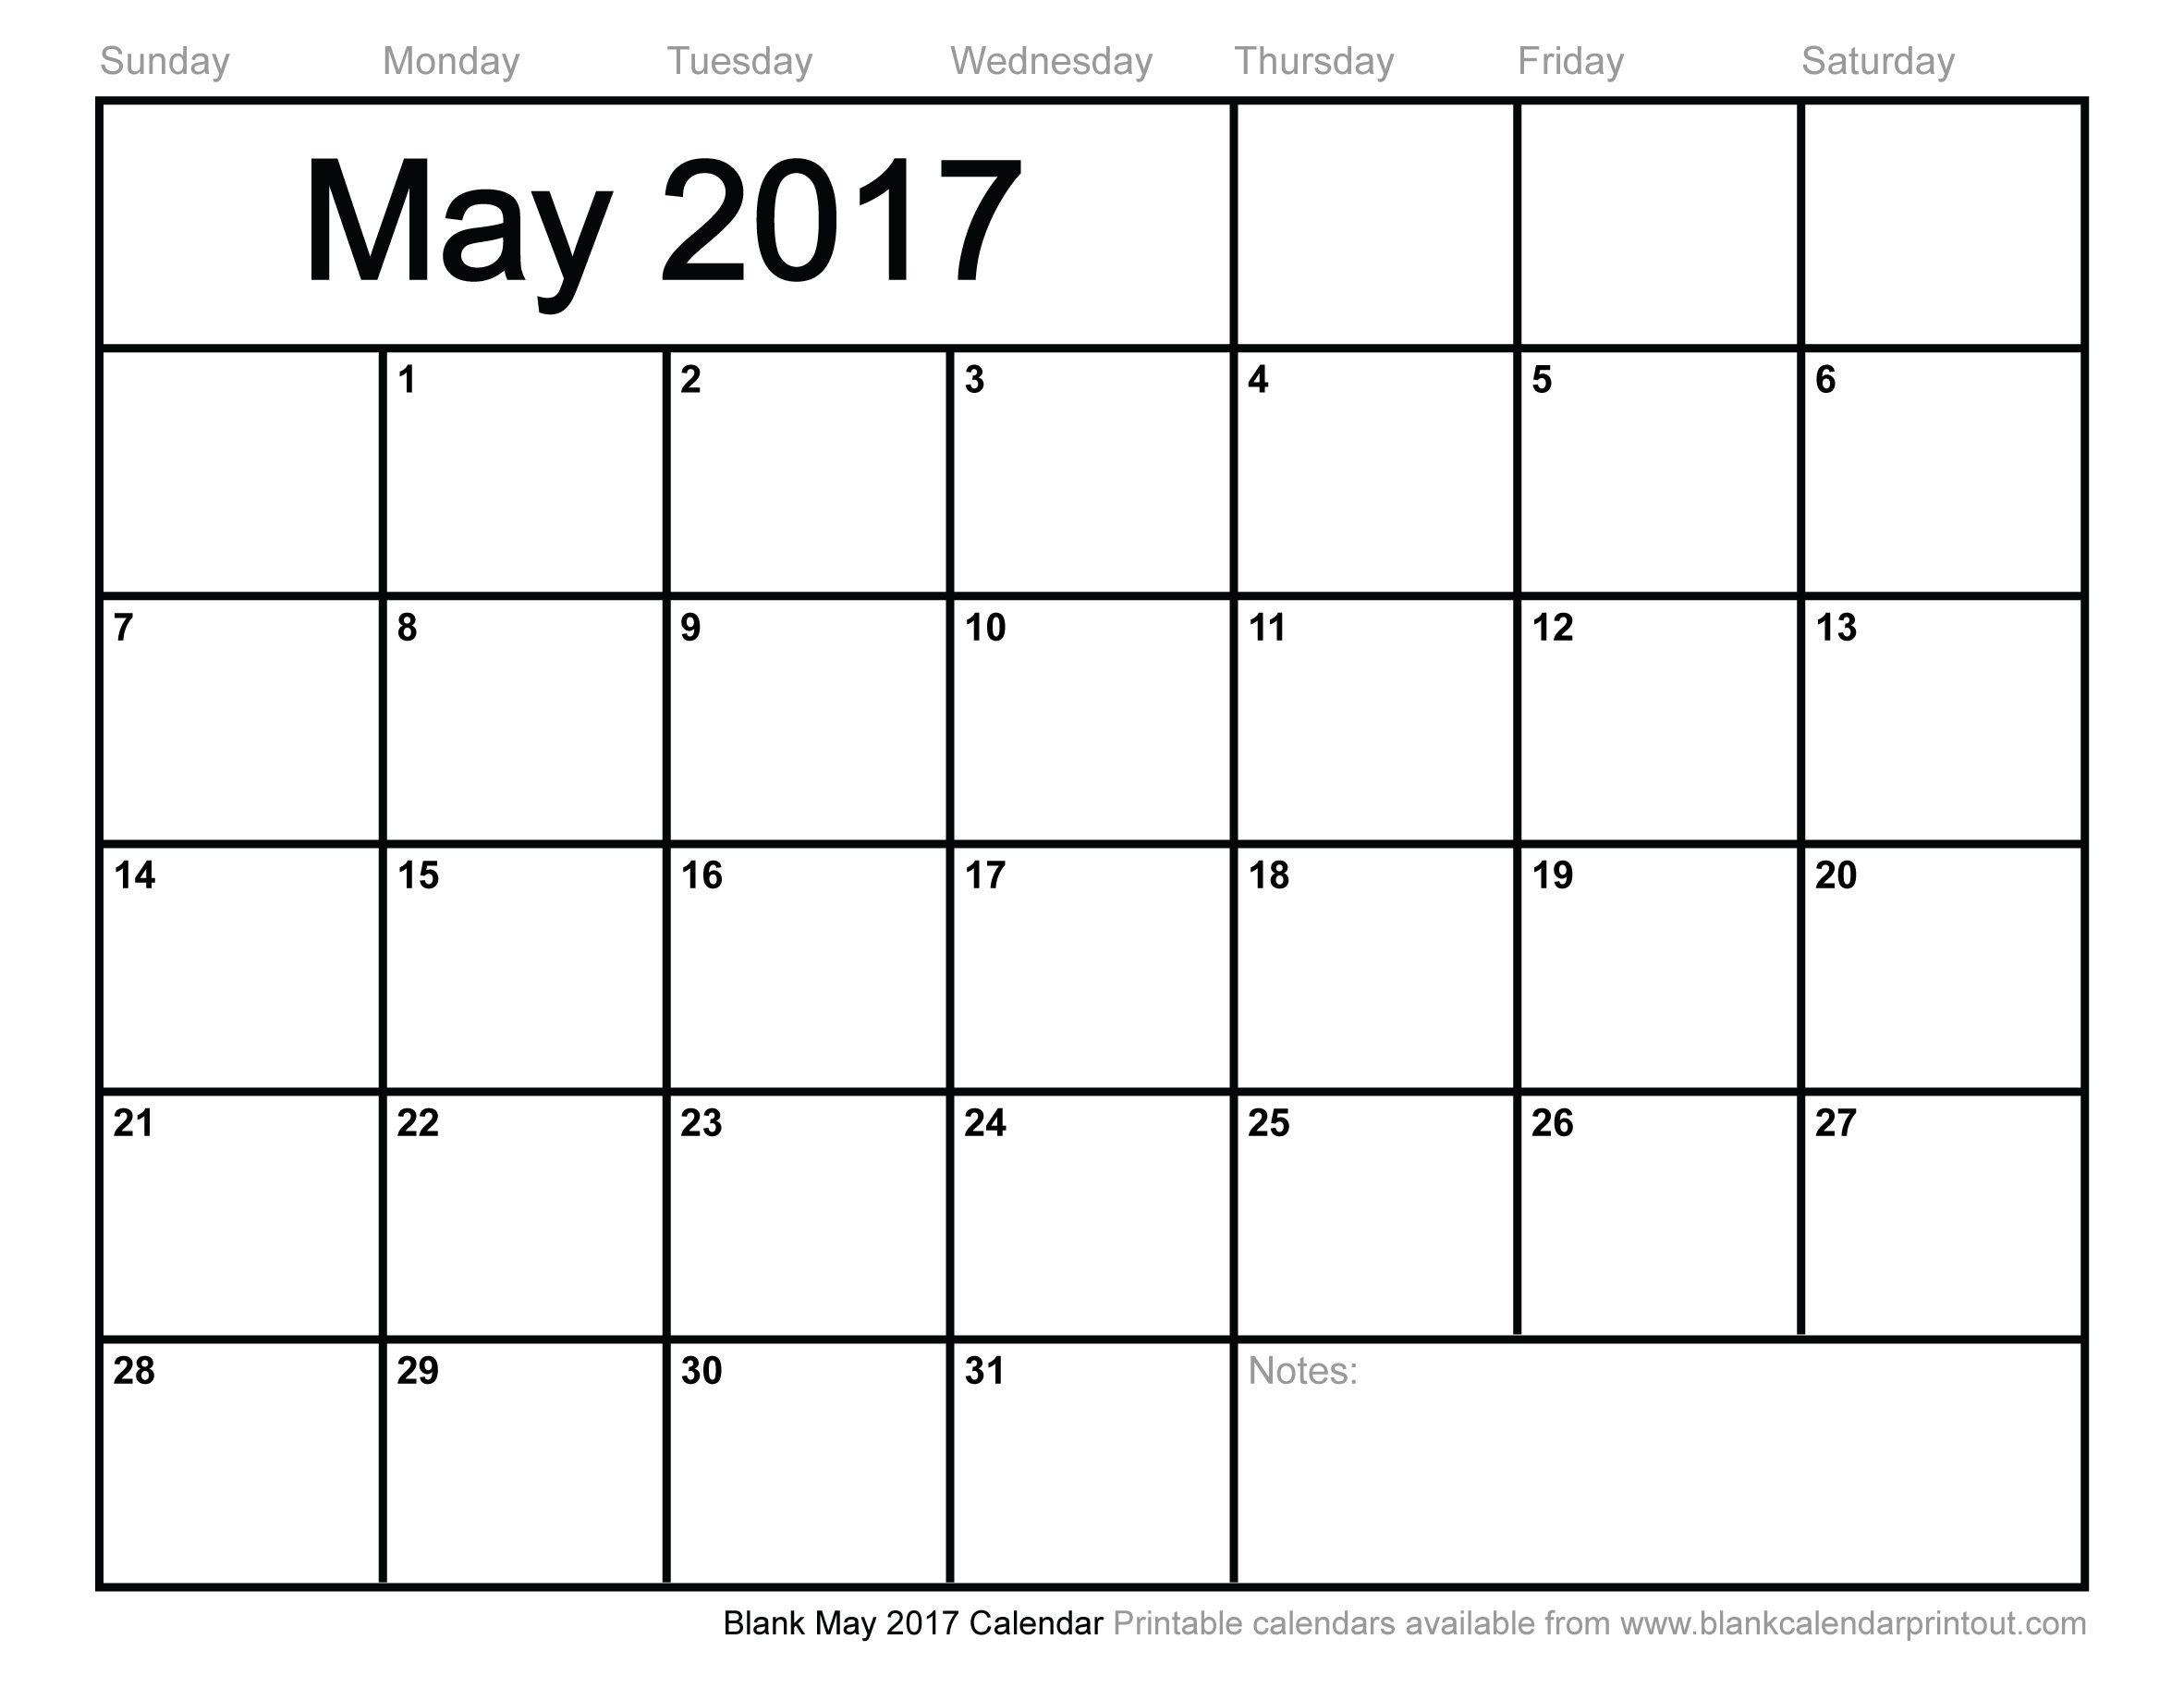 10 best May 2017 Calendar images on Pinterest | May 2017 calendar ...